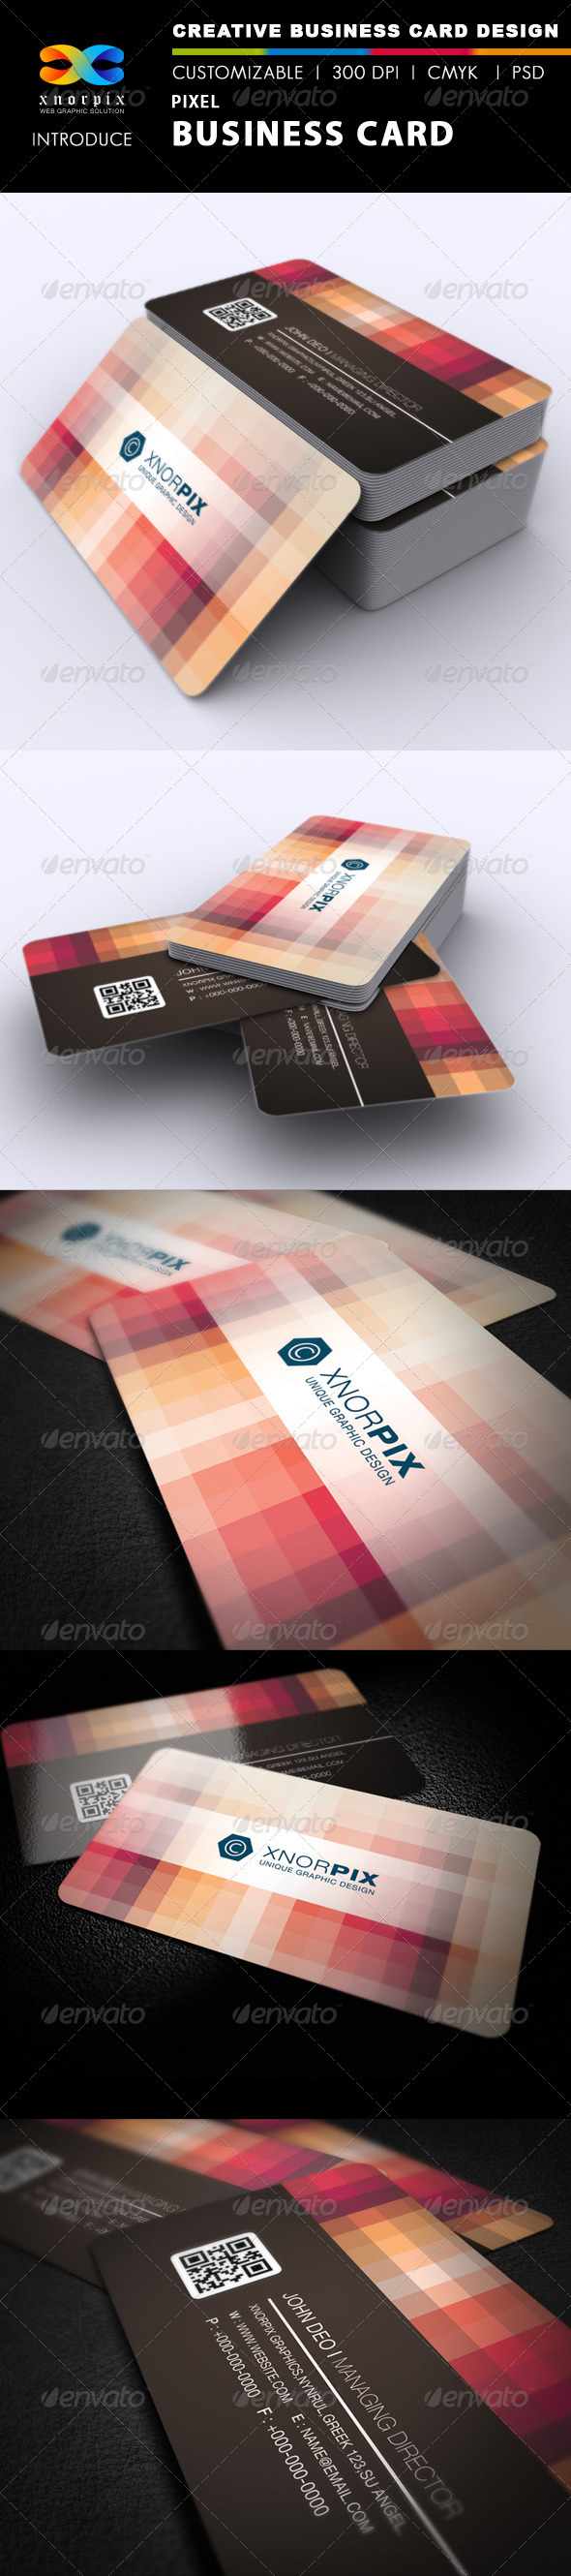 GraphicRiver Pixel Business Card 2720759